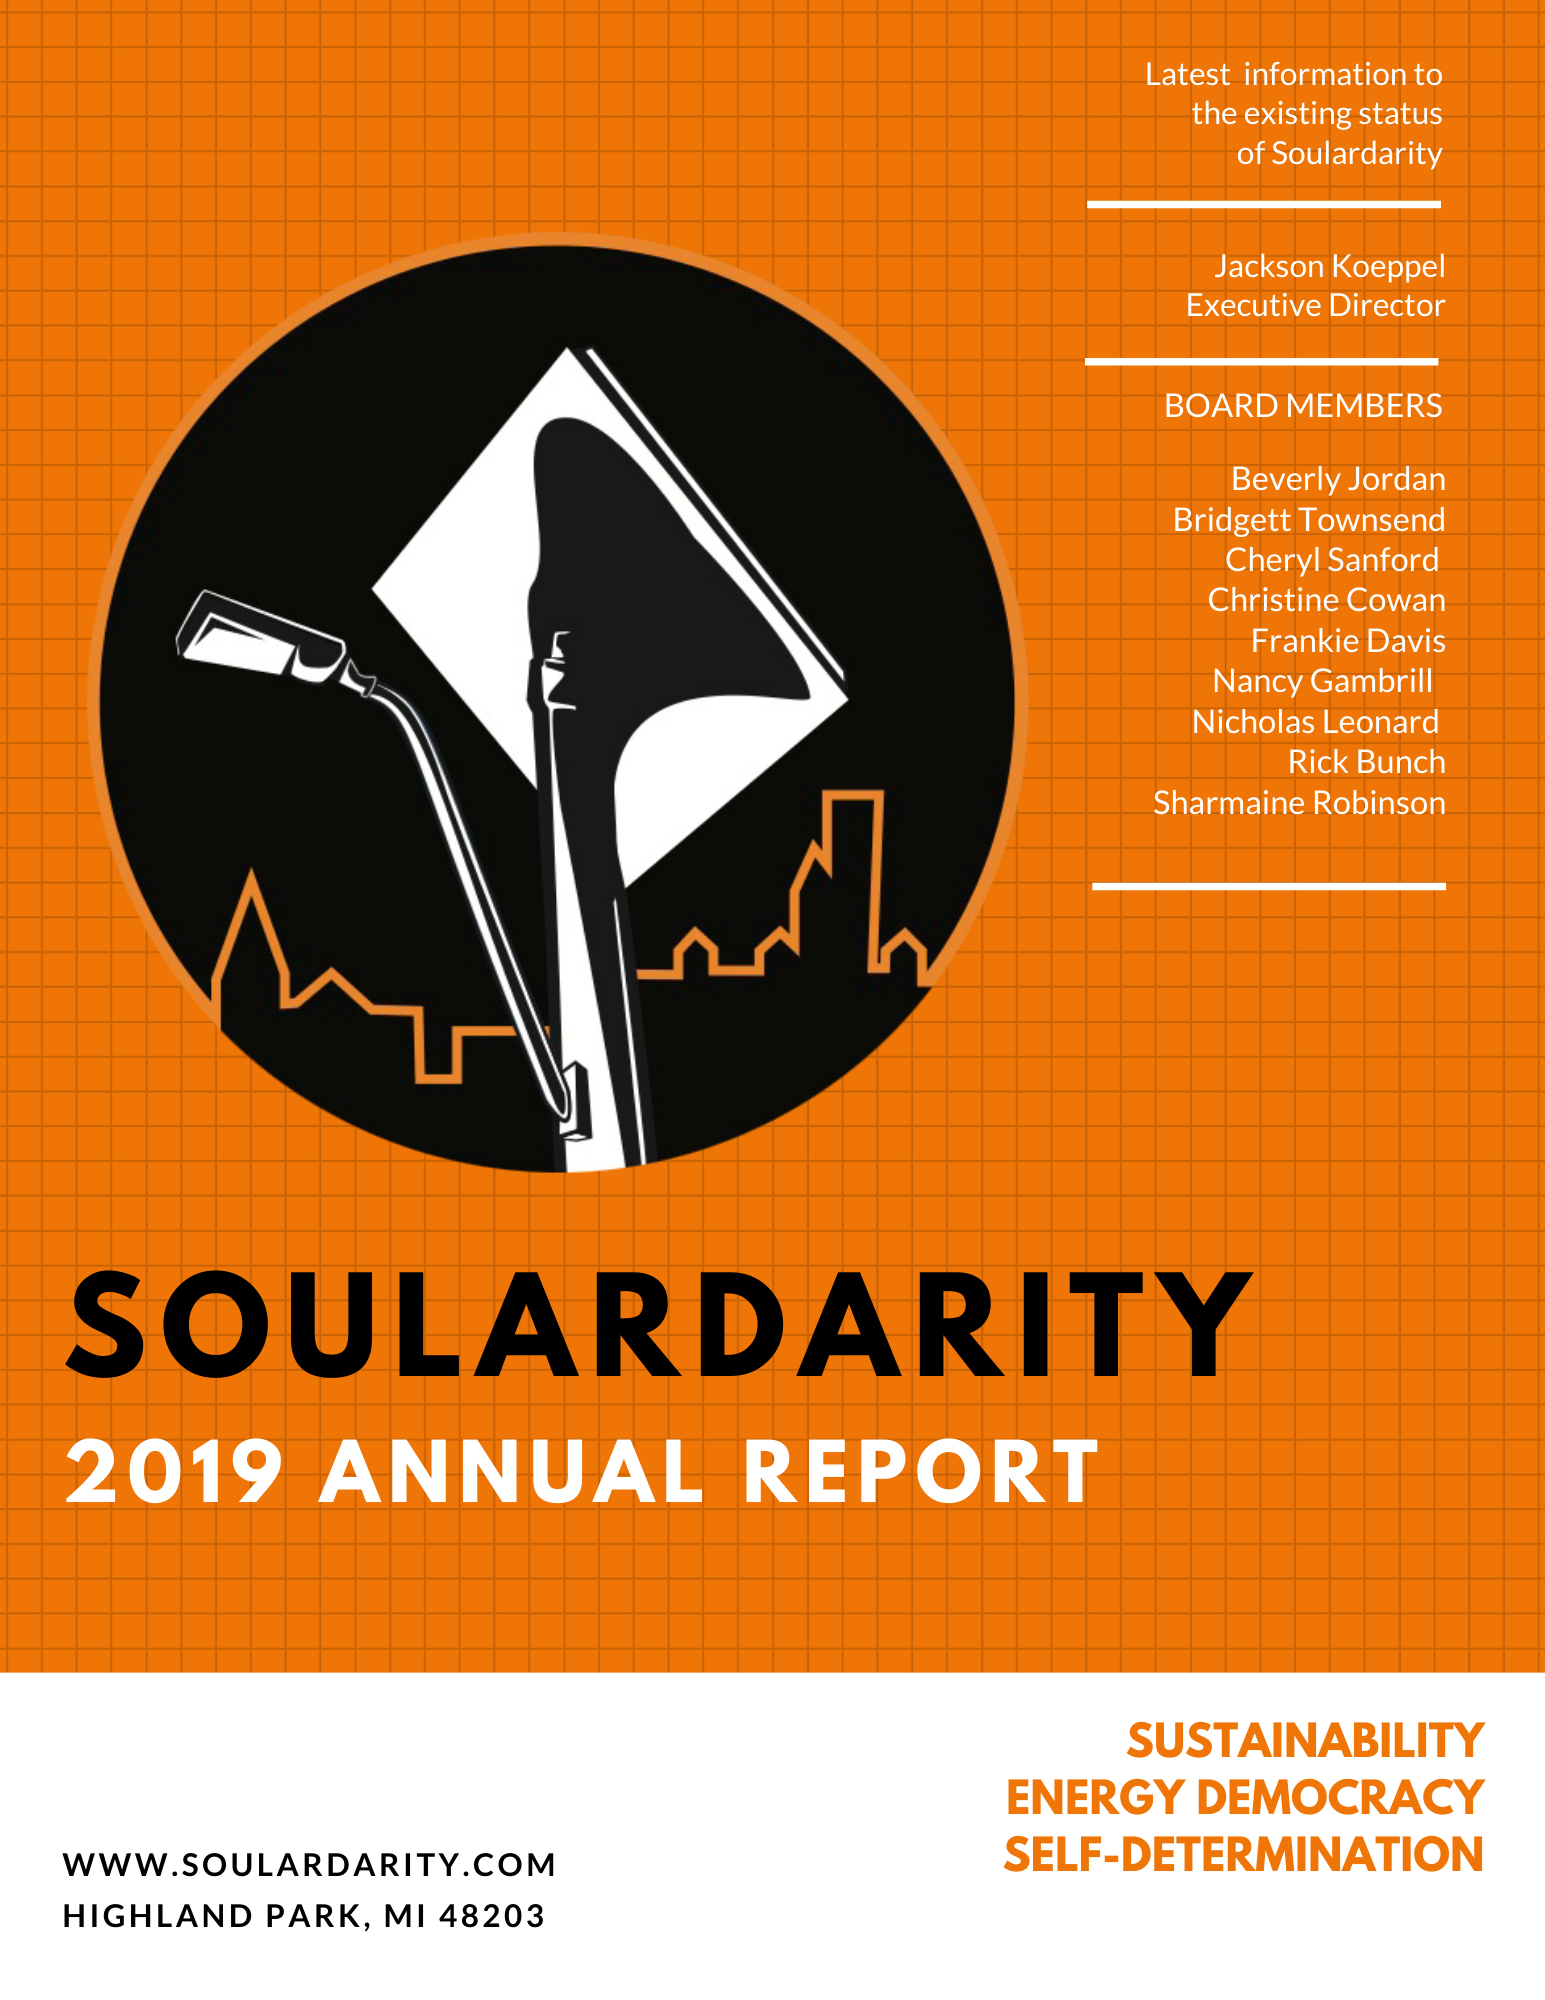 Soulardarity_2020_Annual_Report.png